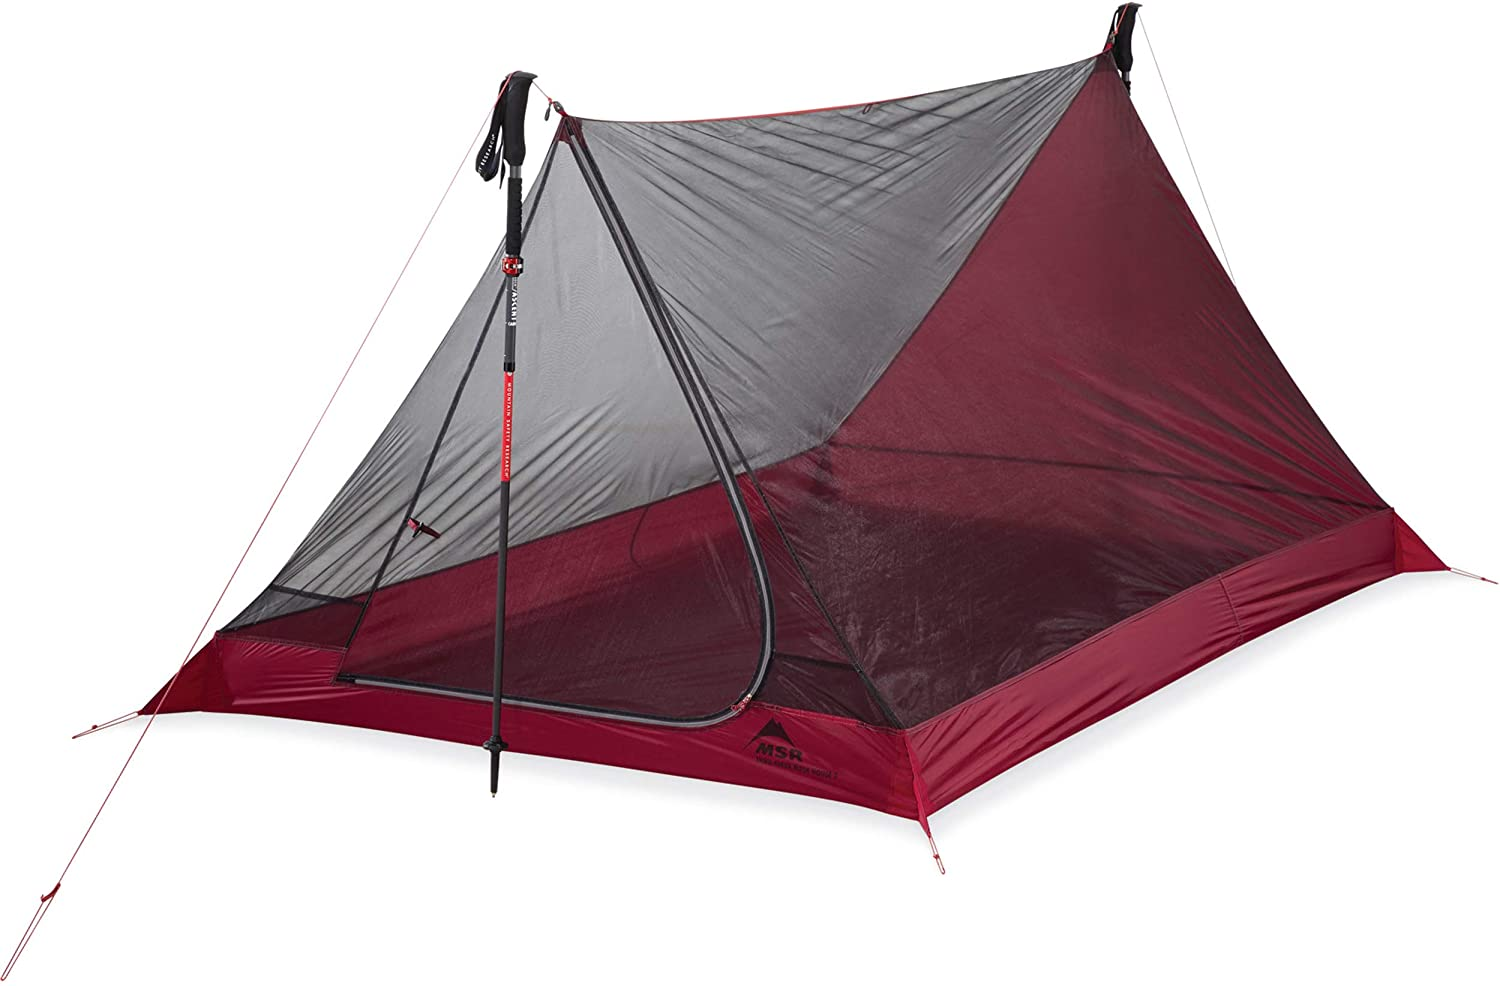 Ultralight Backpacking Tents For One Person